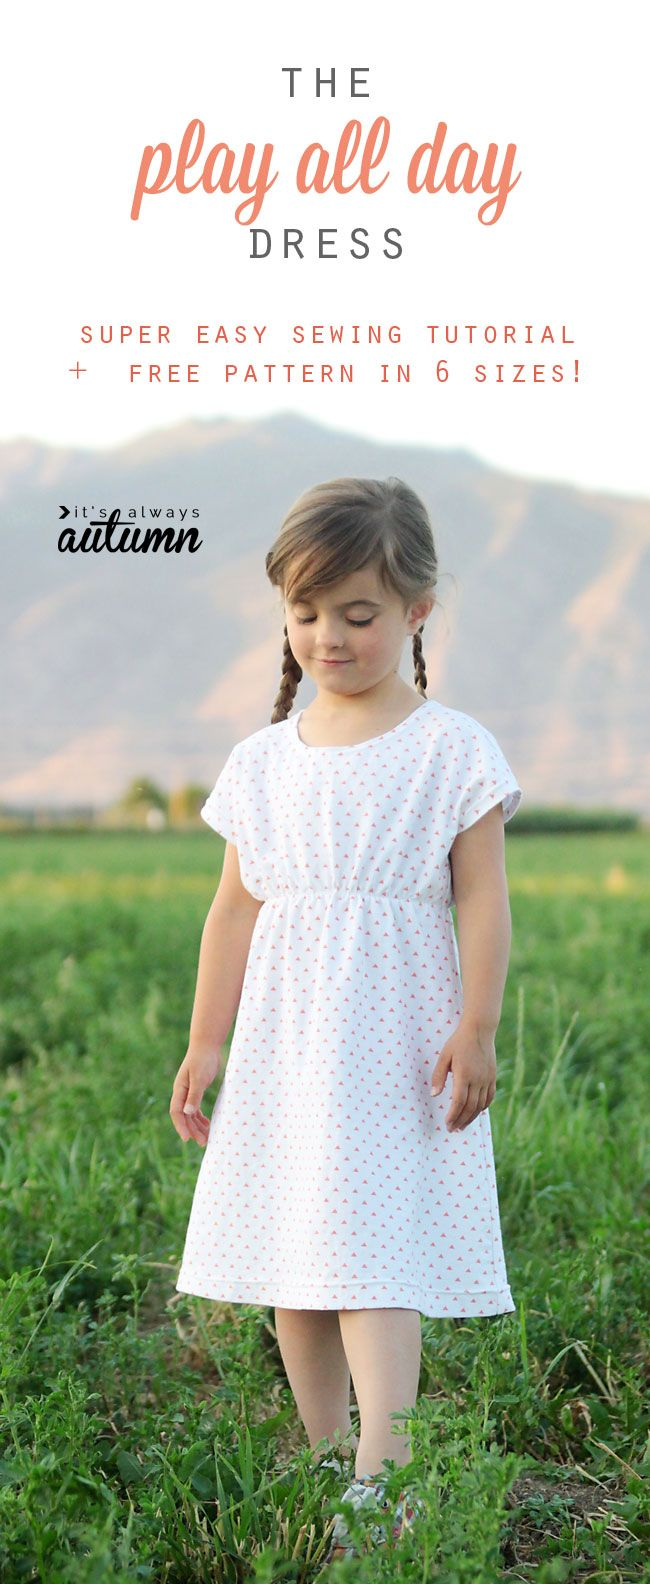 the play-all-day dress: free girls\' dress pattern in 6 sizes | Nähen ...